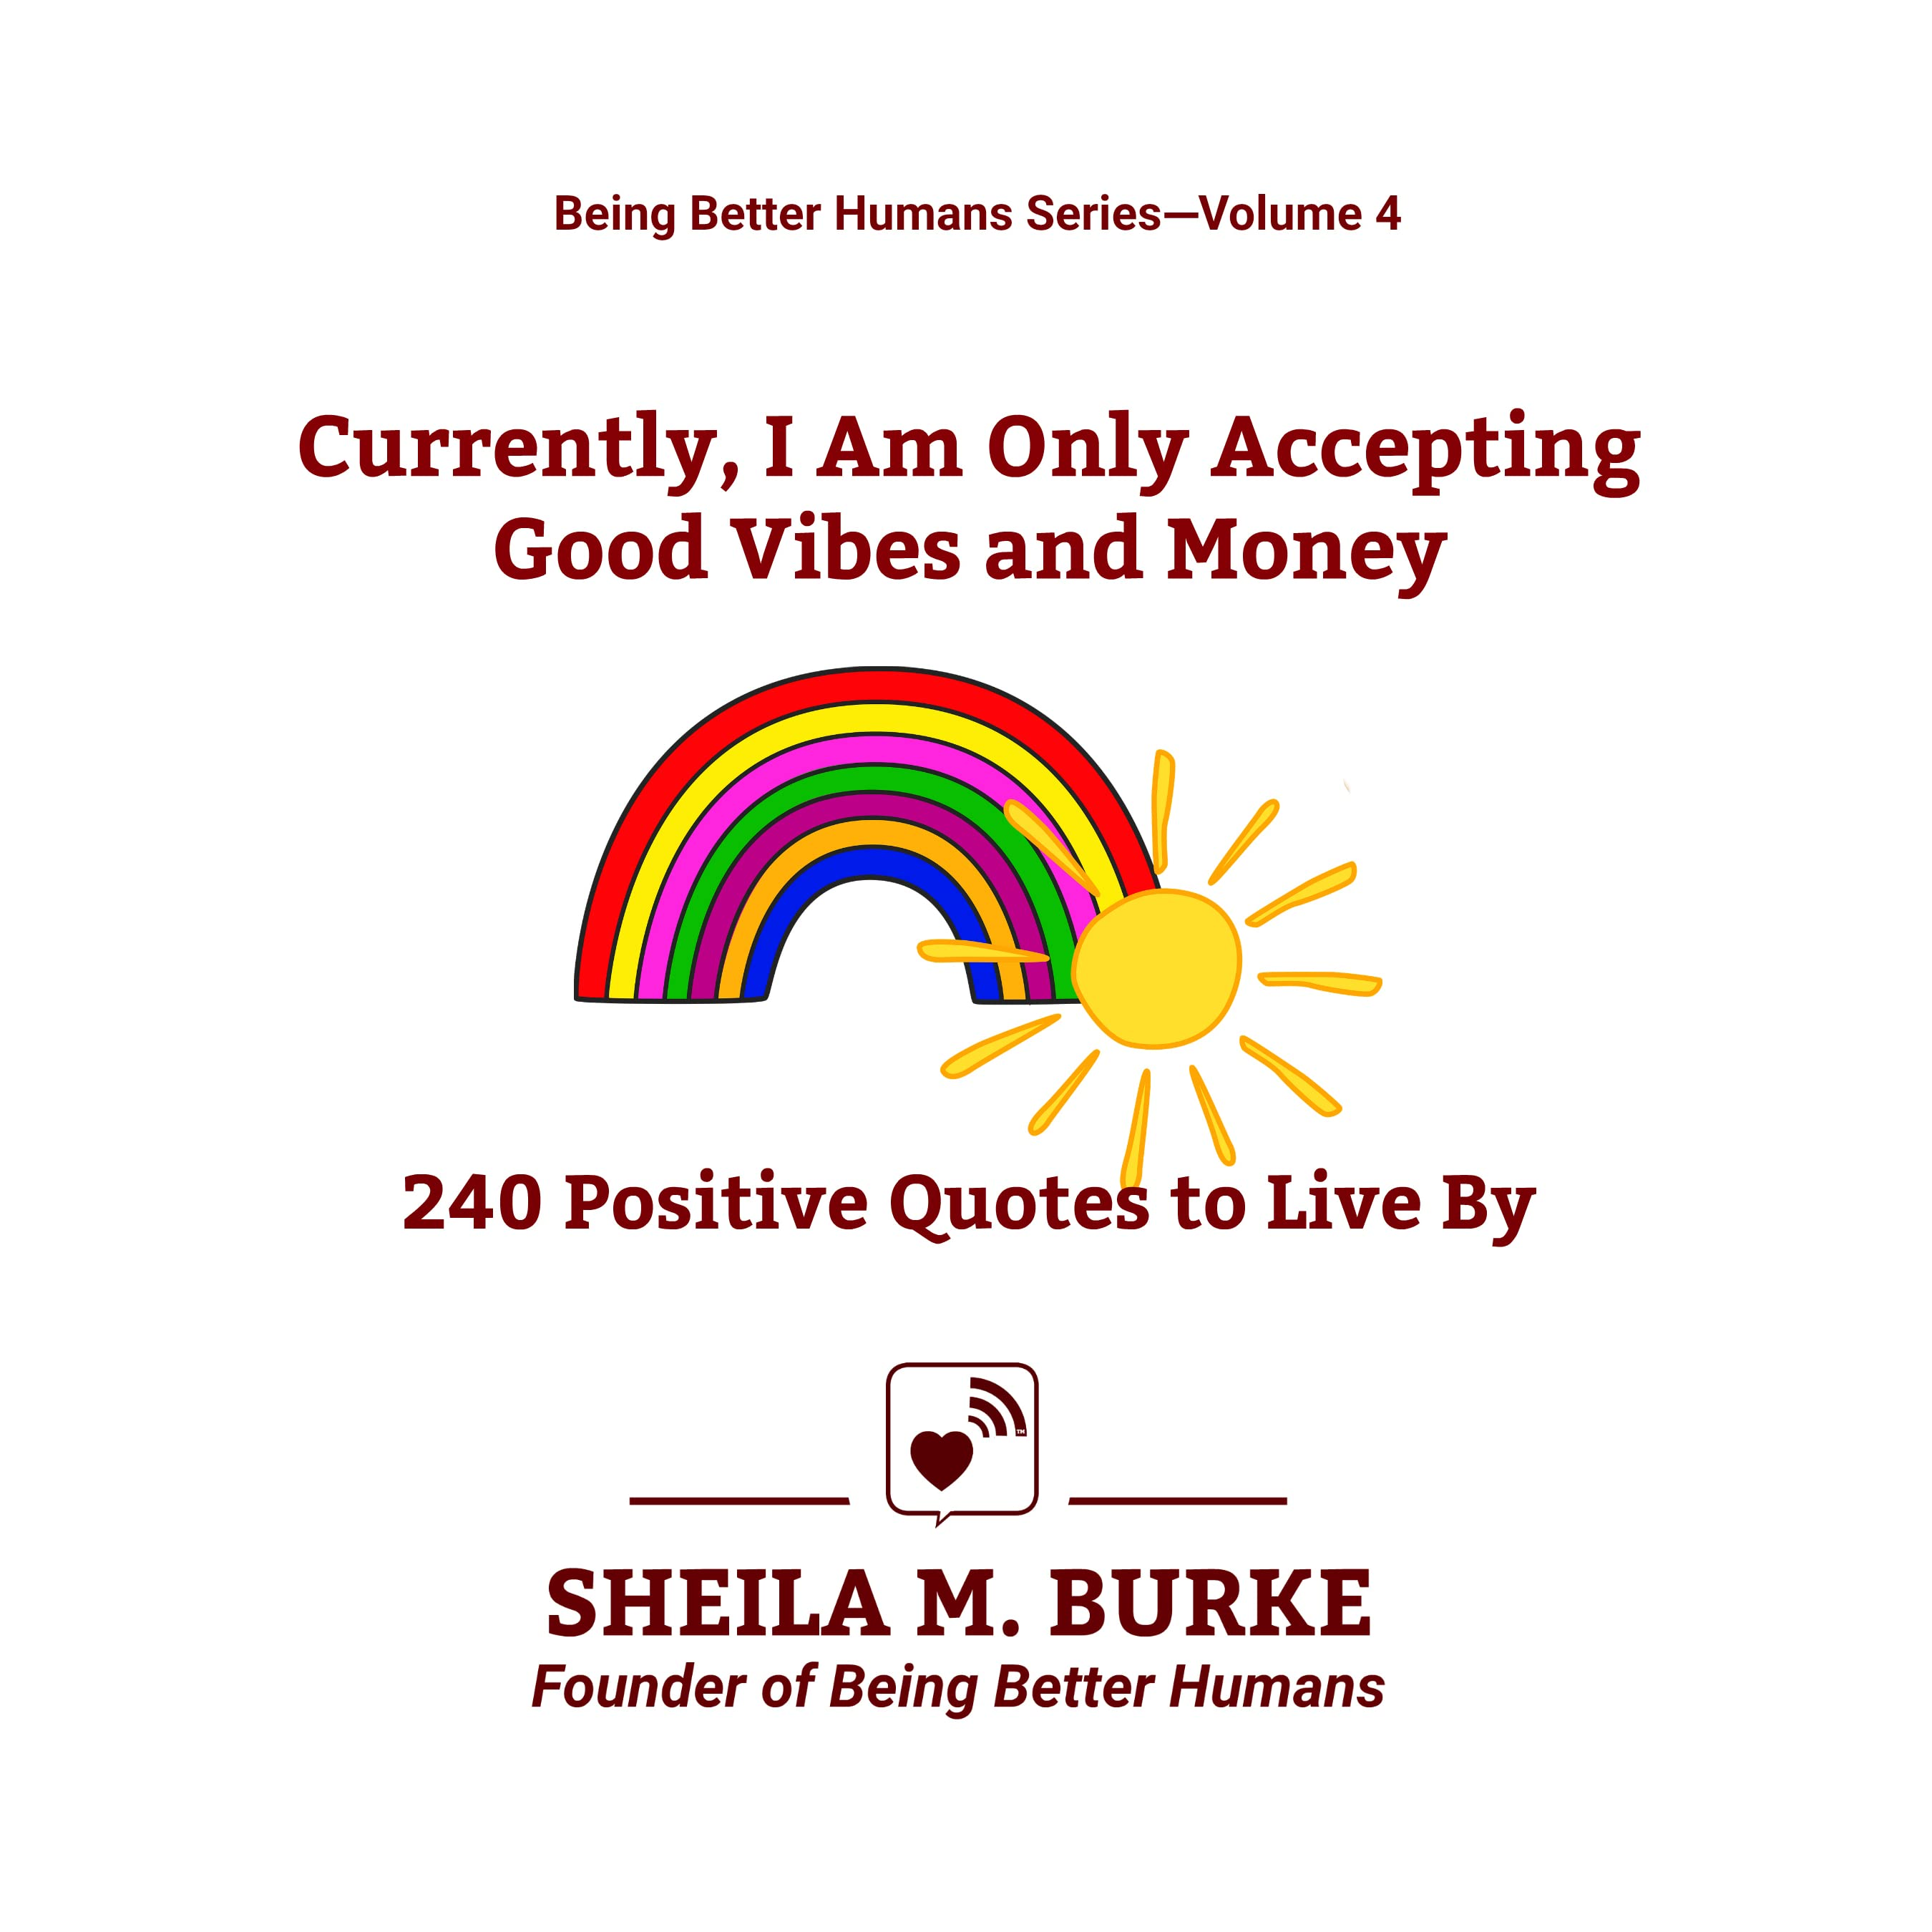 Currently I Am Only Accepting Good Vibes And Money 240 Positive Quotes To Live By Being Better Humans Volume 4 By Sheila M Burke